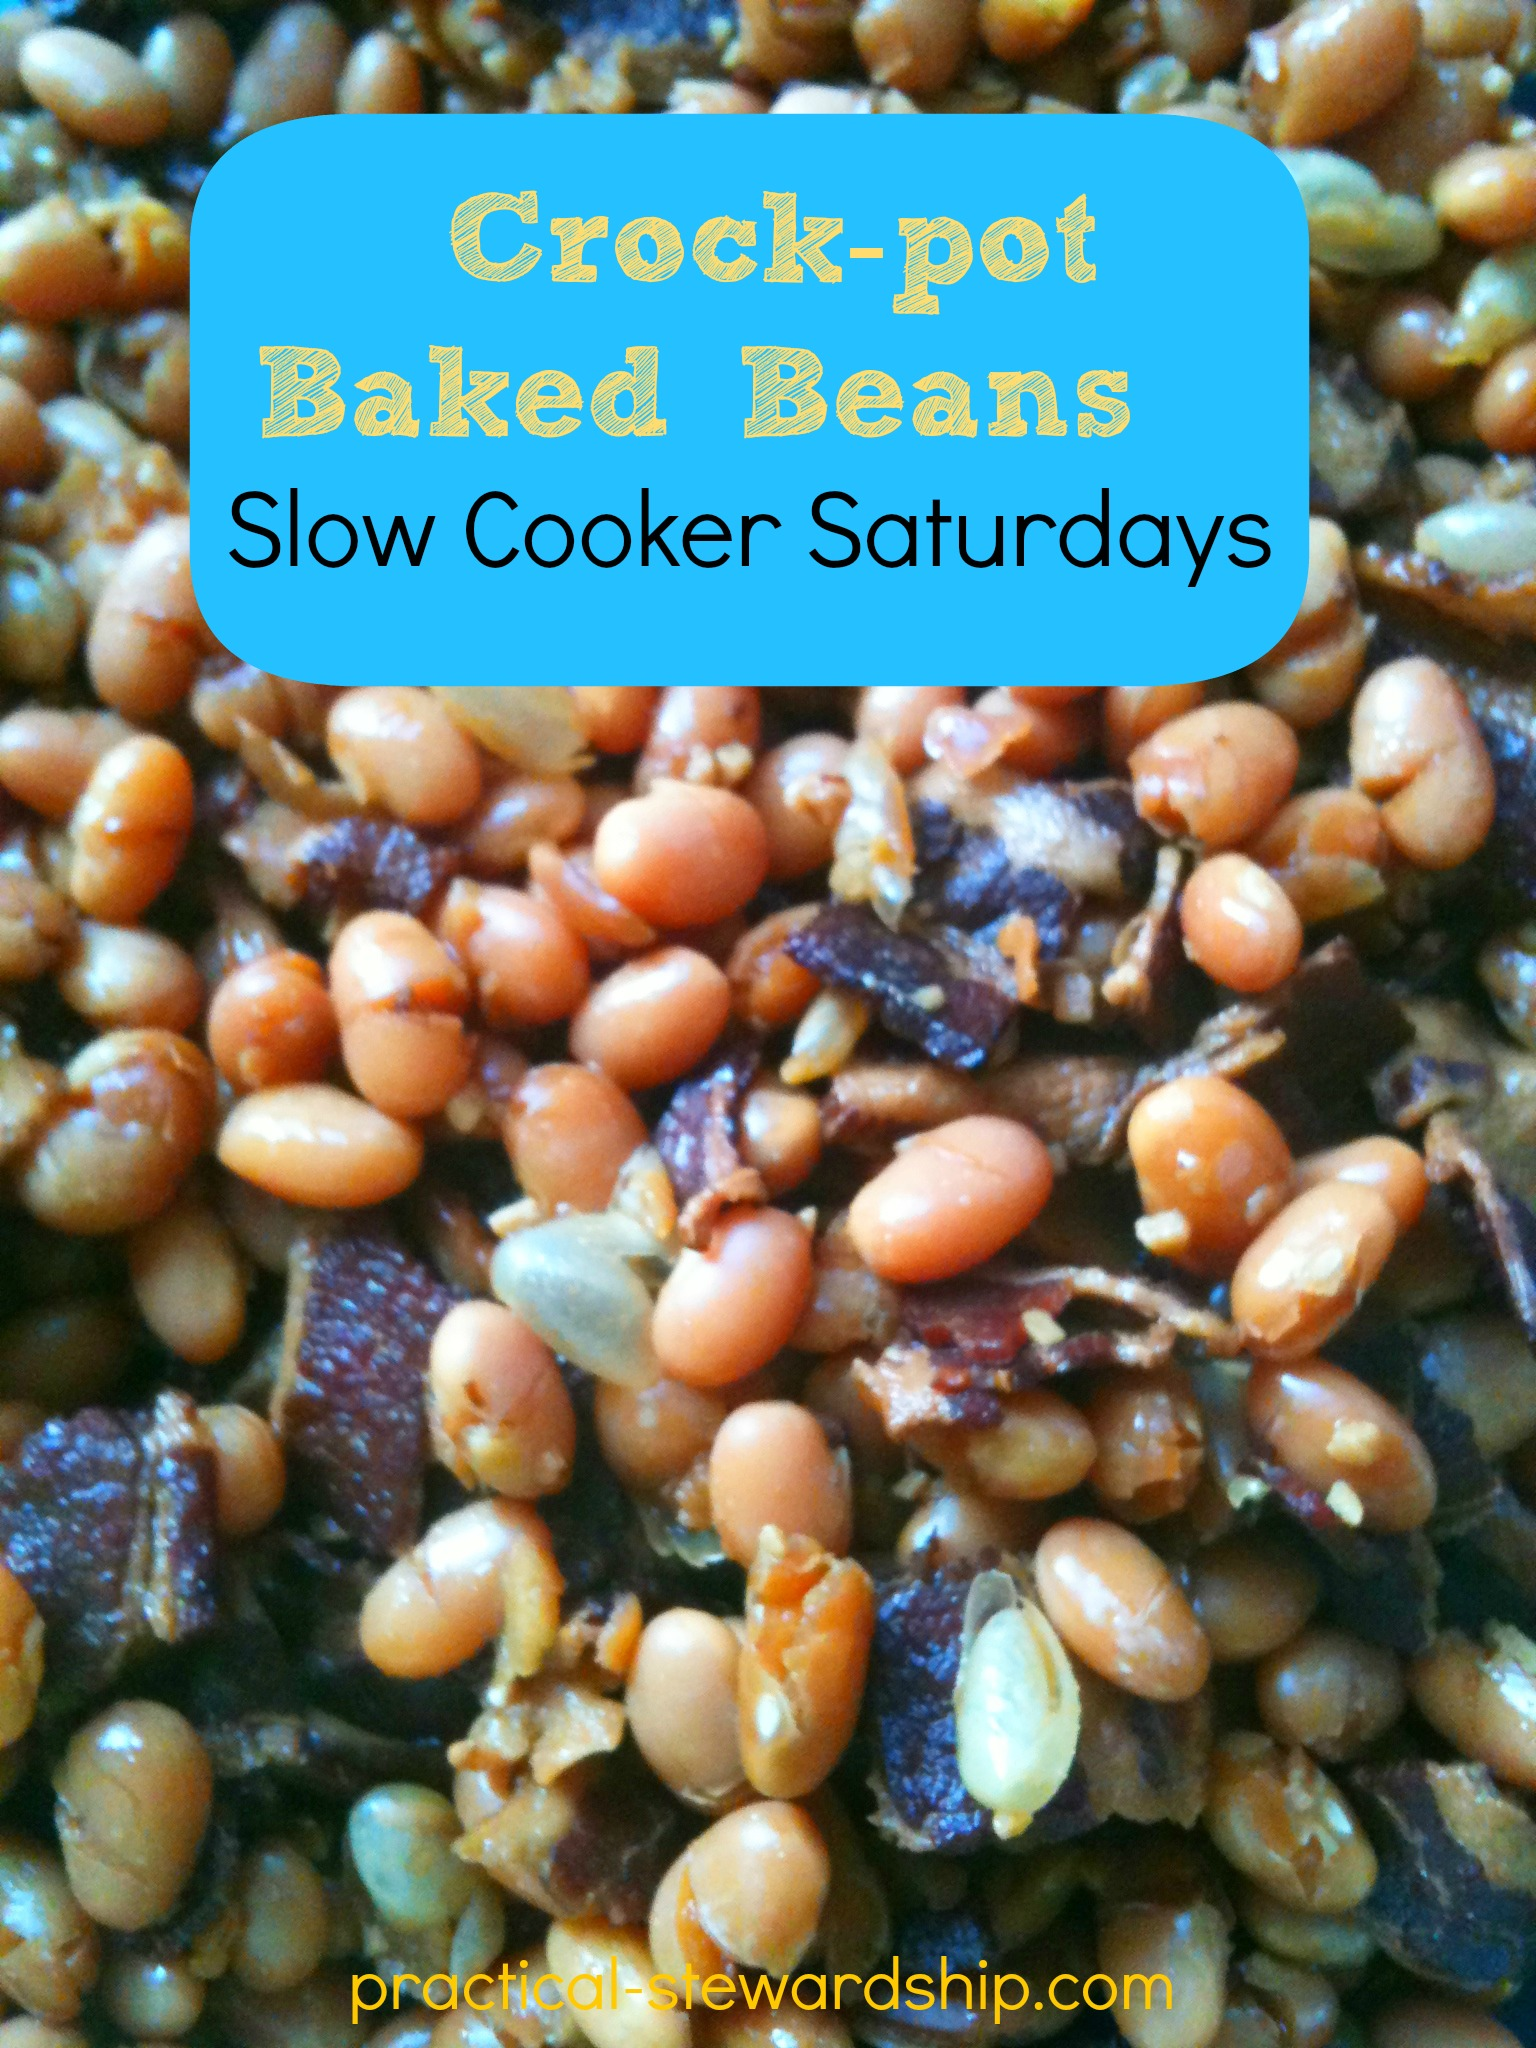 Slow Cooker Recipes-Practical-Stewardship.com